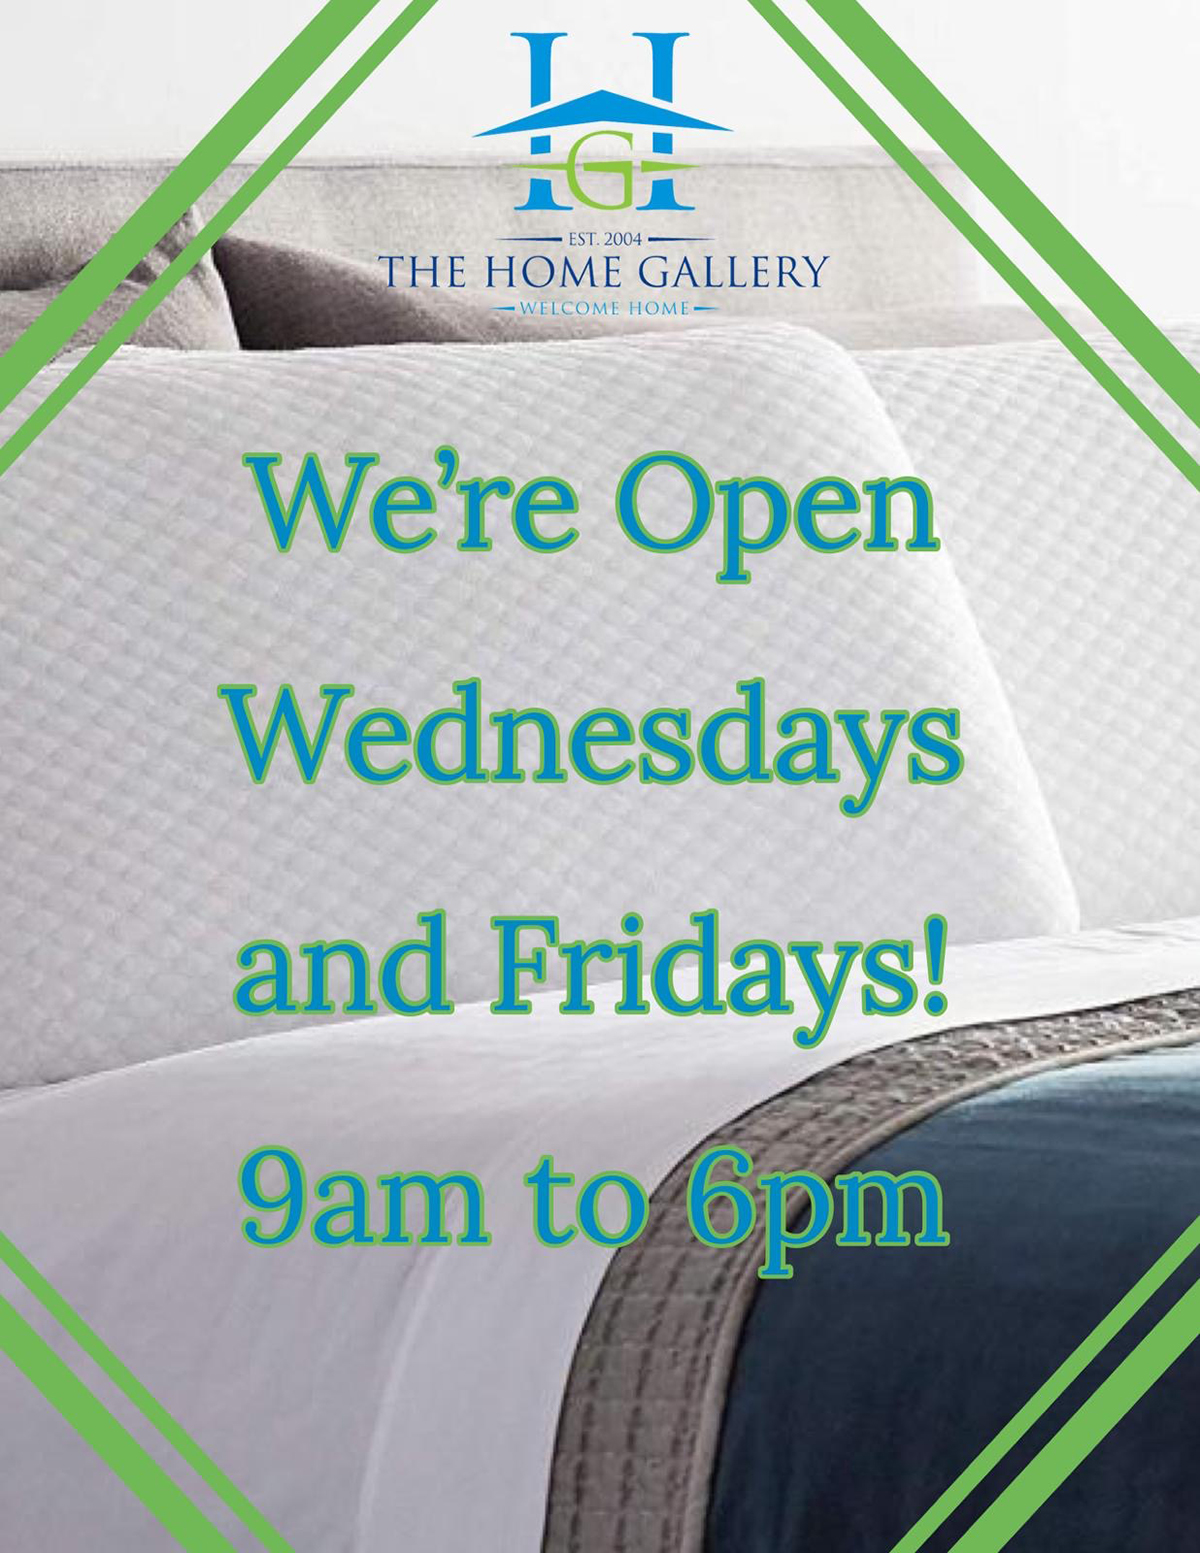 The Home Gallery. We're Open Wednesdays and Fridays